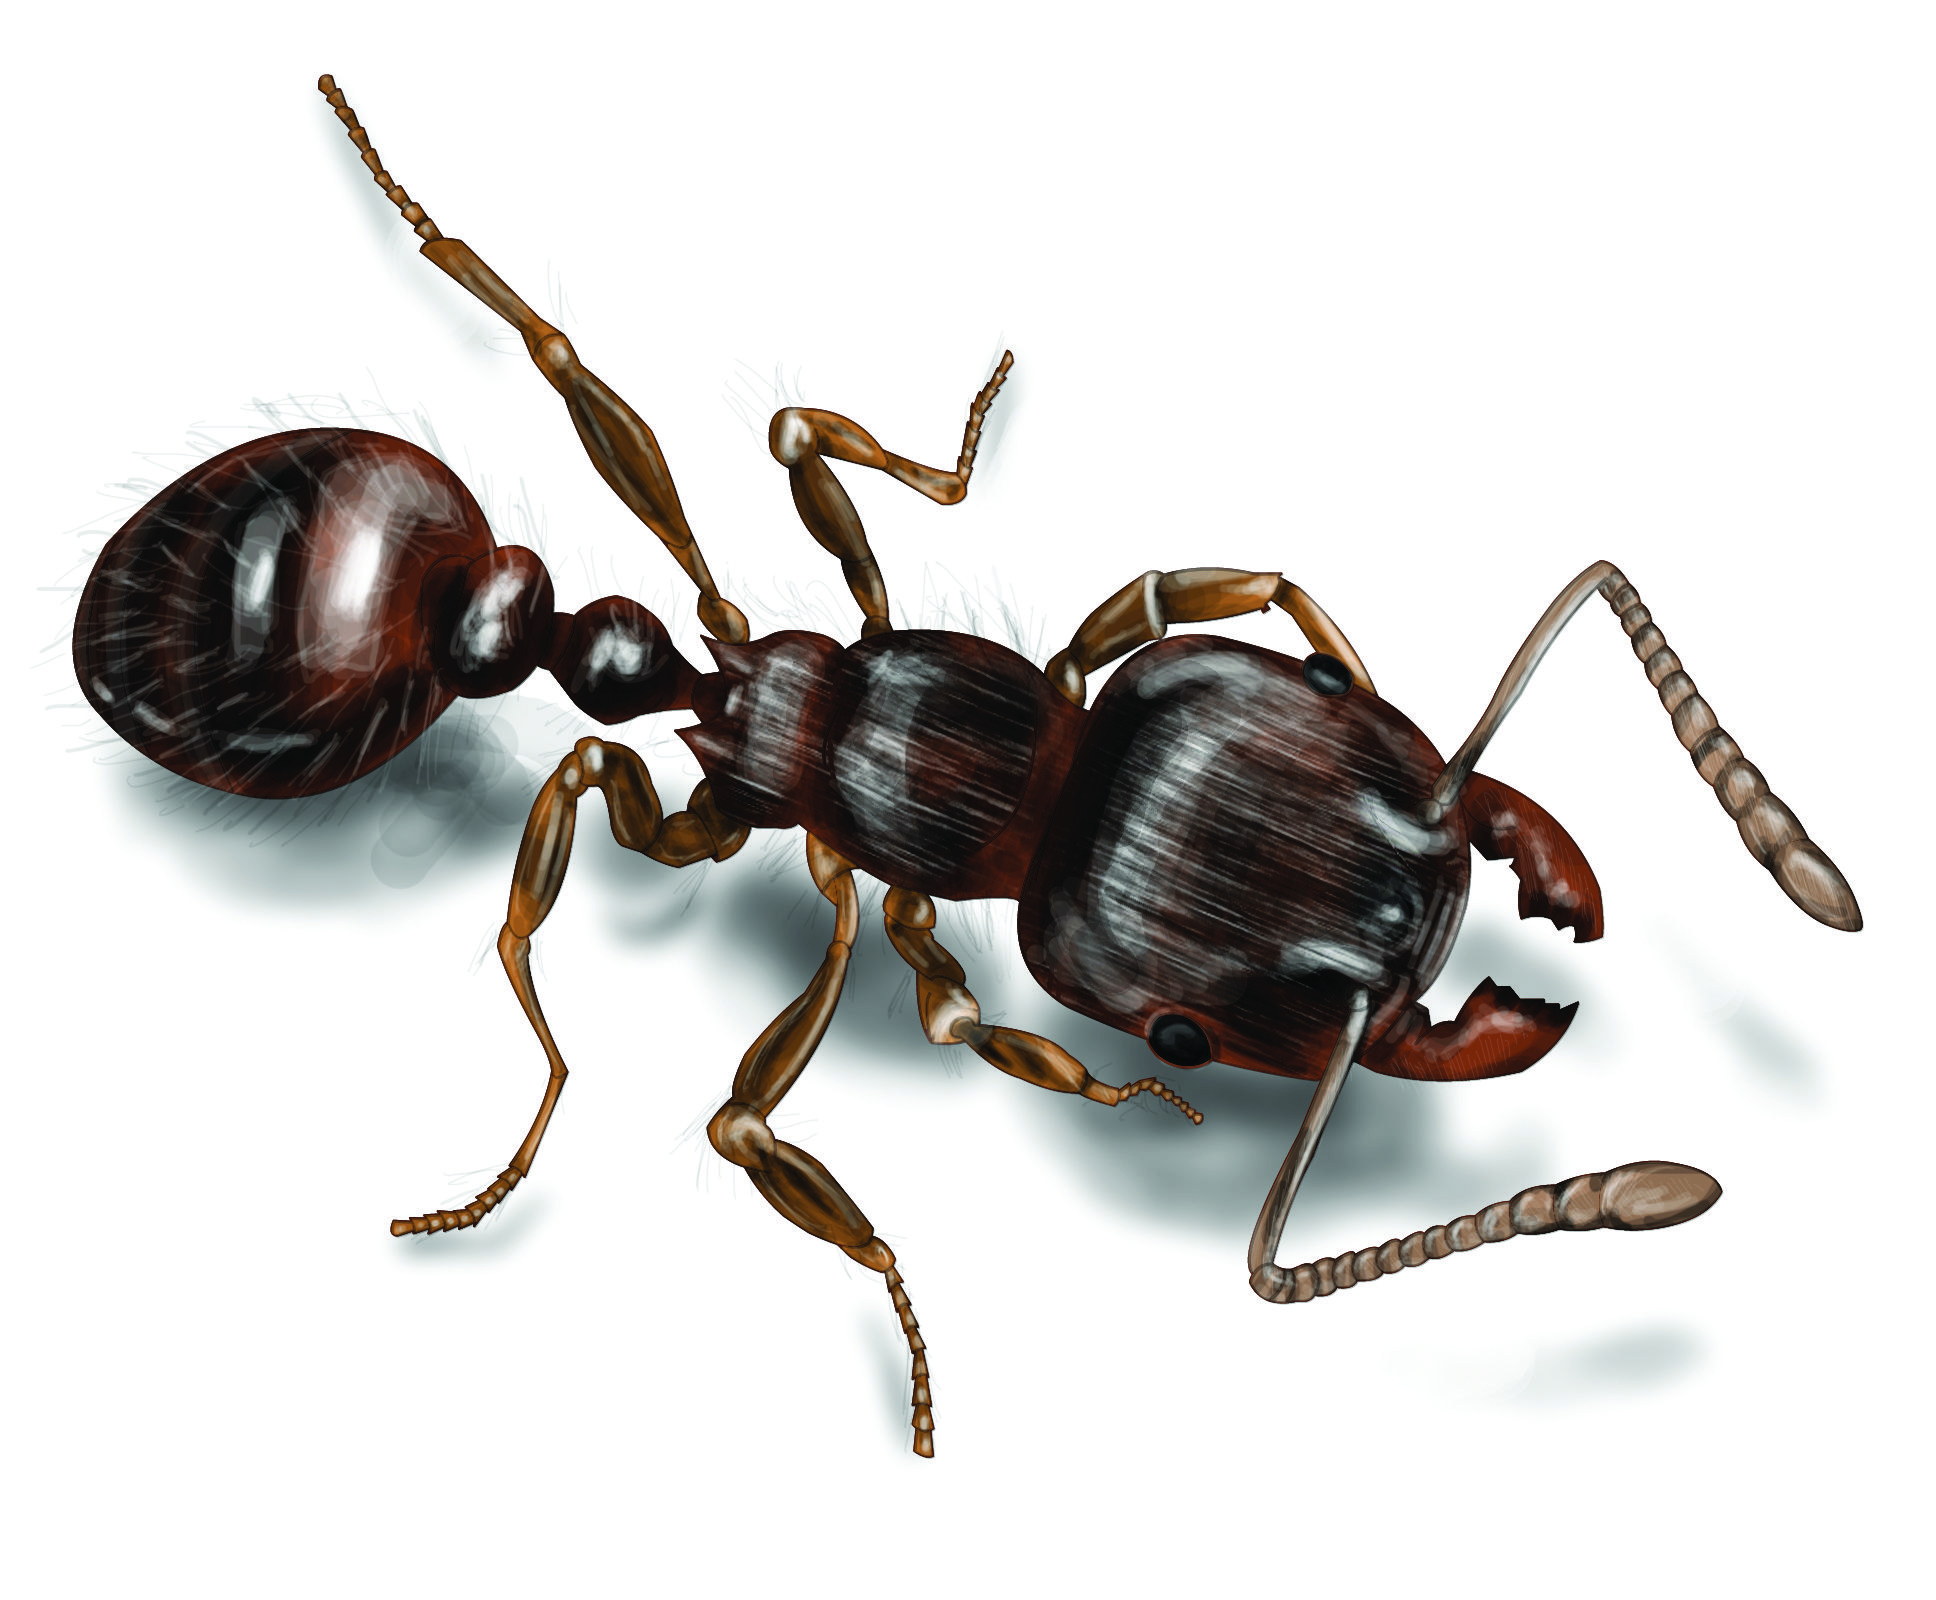 Pavement Ant Illustration 1936x1600 Jpg 1 936 1 600 Pixels Ant Species Ants Pictures Of Insects